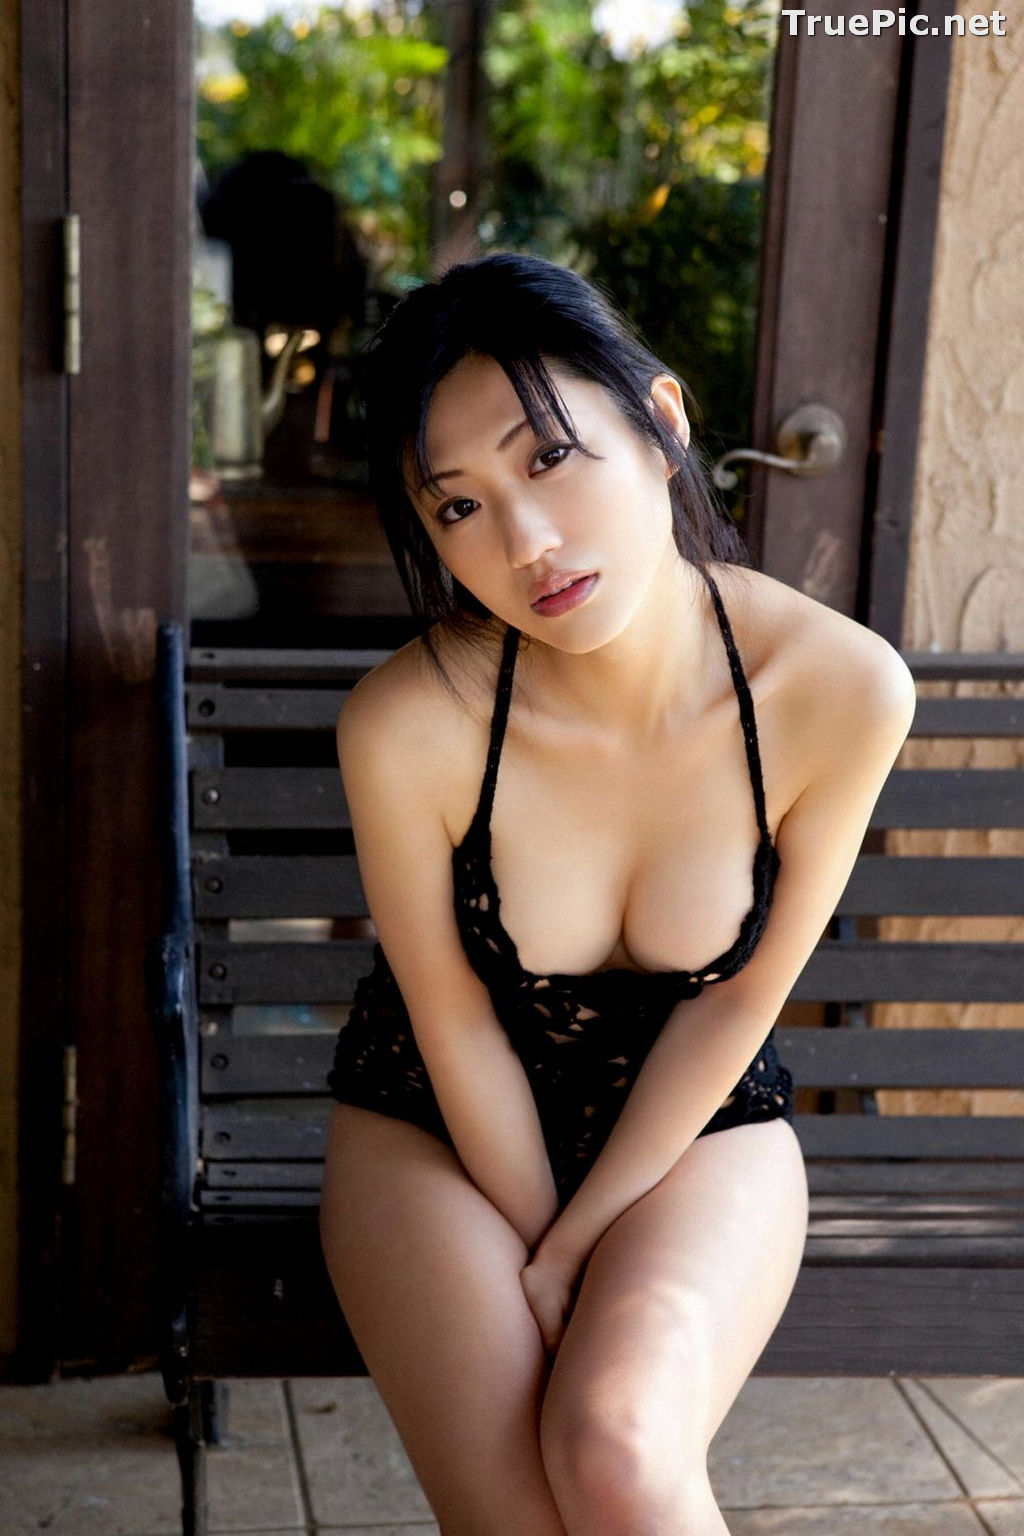 Image [YS Web] Vol.525 - Japanese Actress and Gravure Idol - Mitsu Dan - TruePic.net - Picture-7